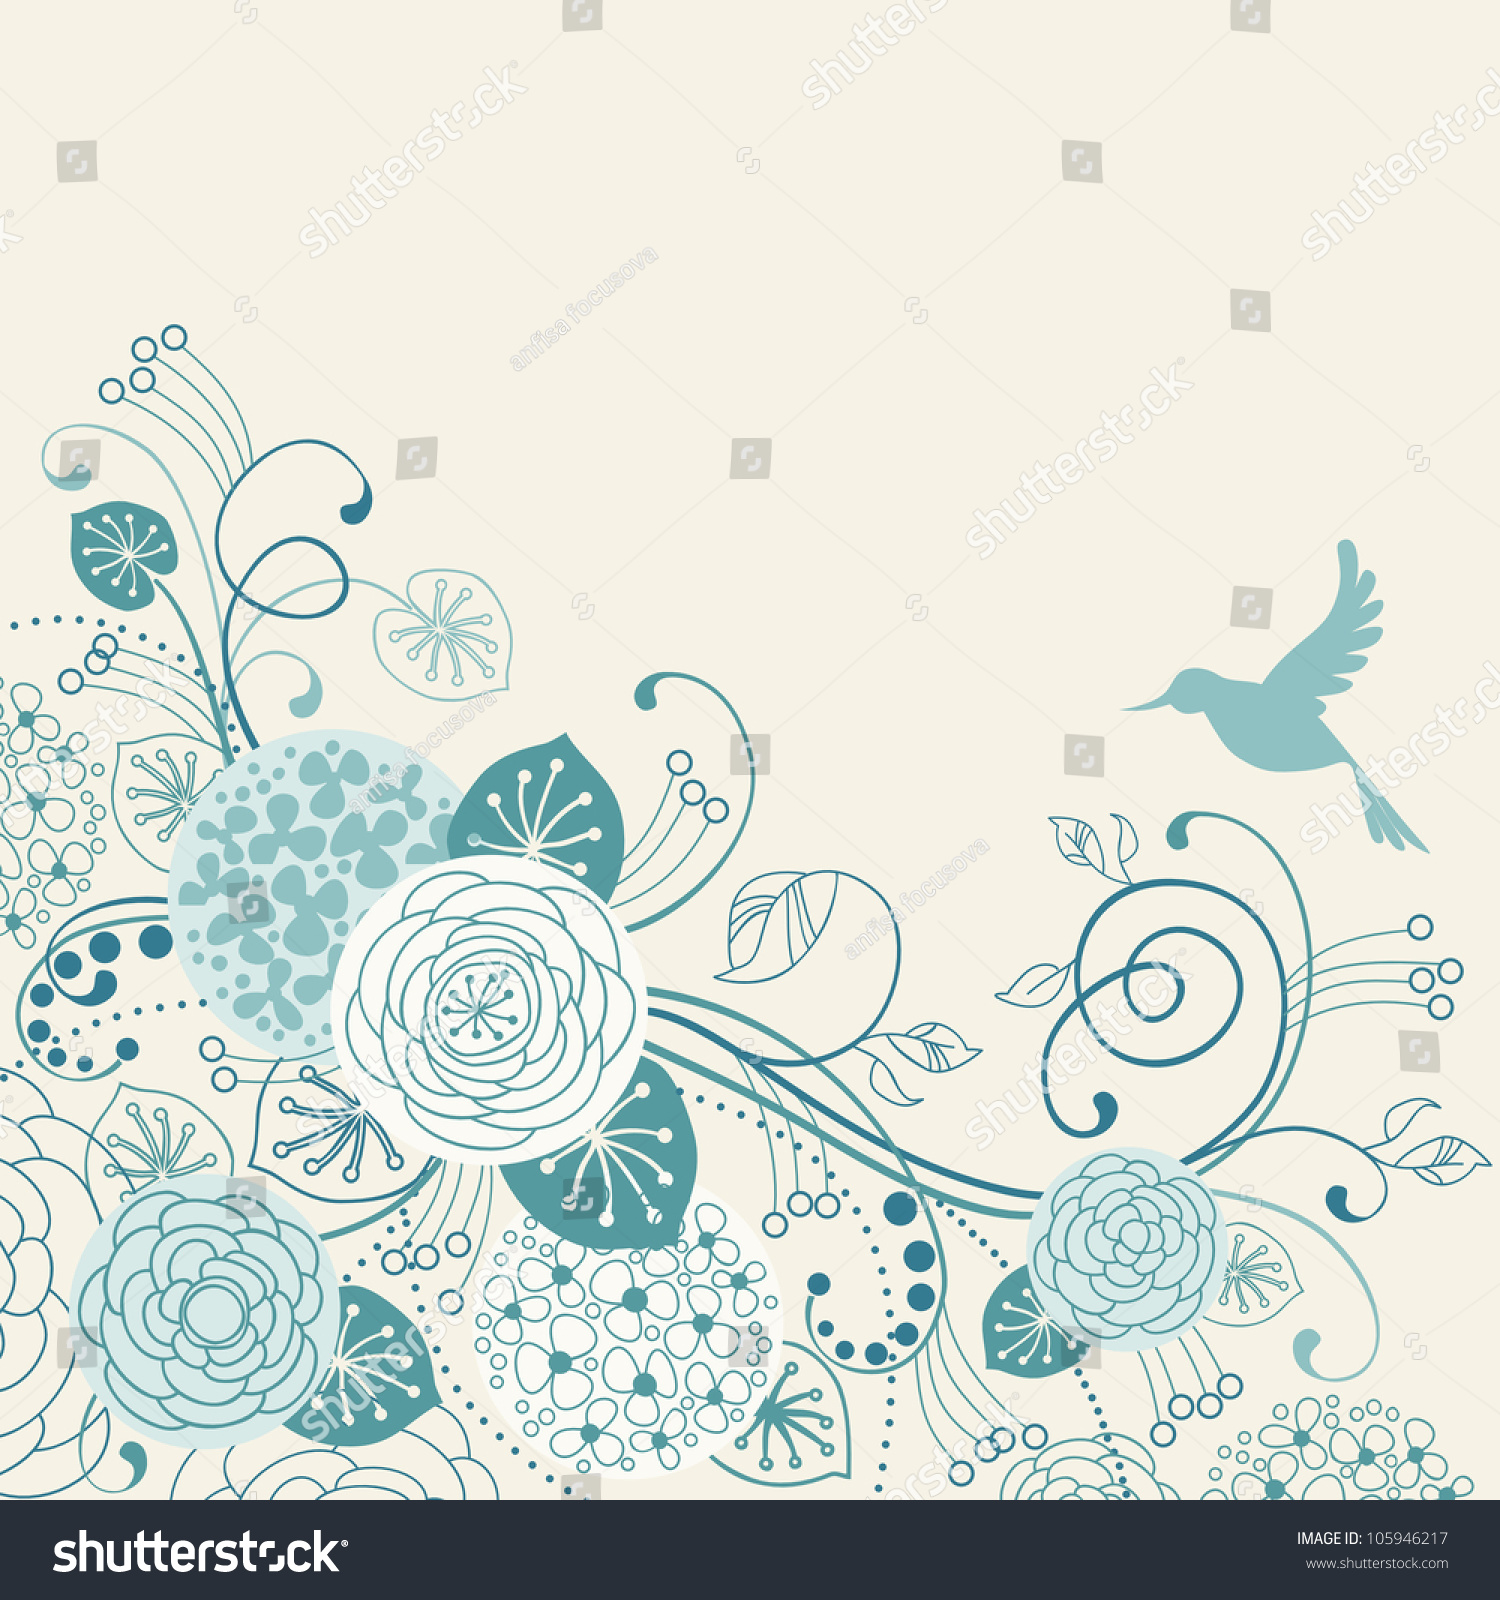 vector background flowers leaves bird stylized stock vector